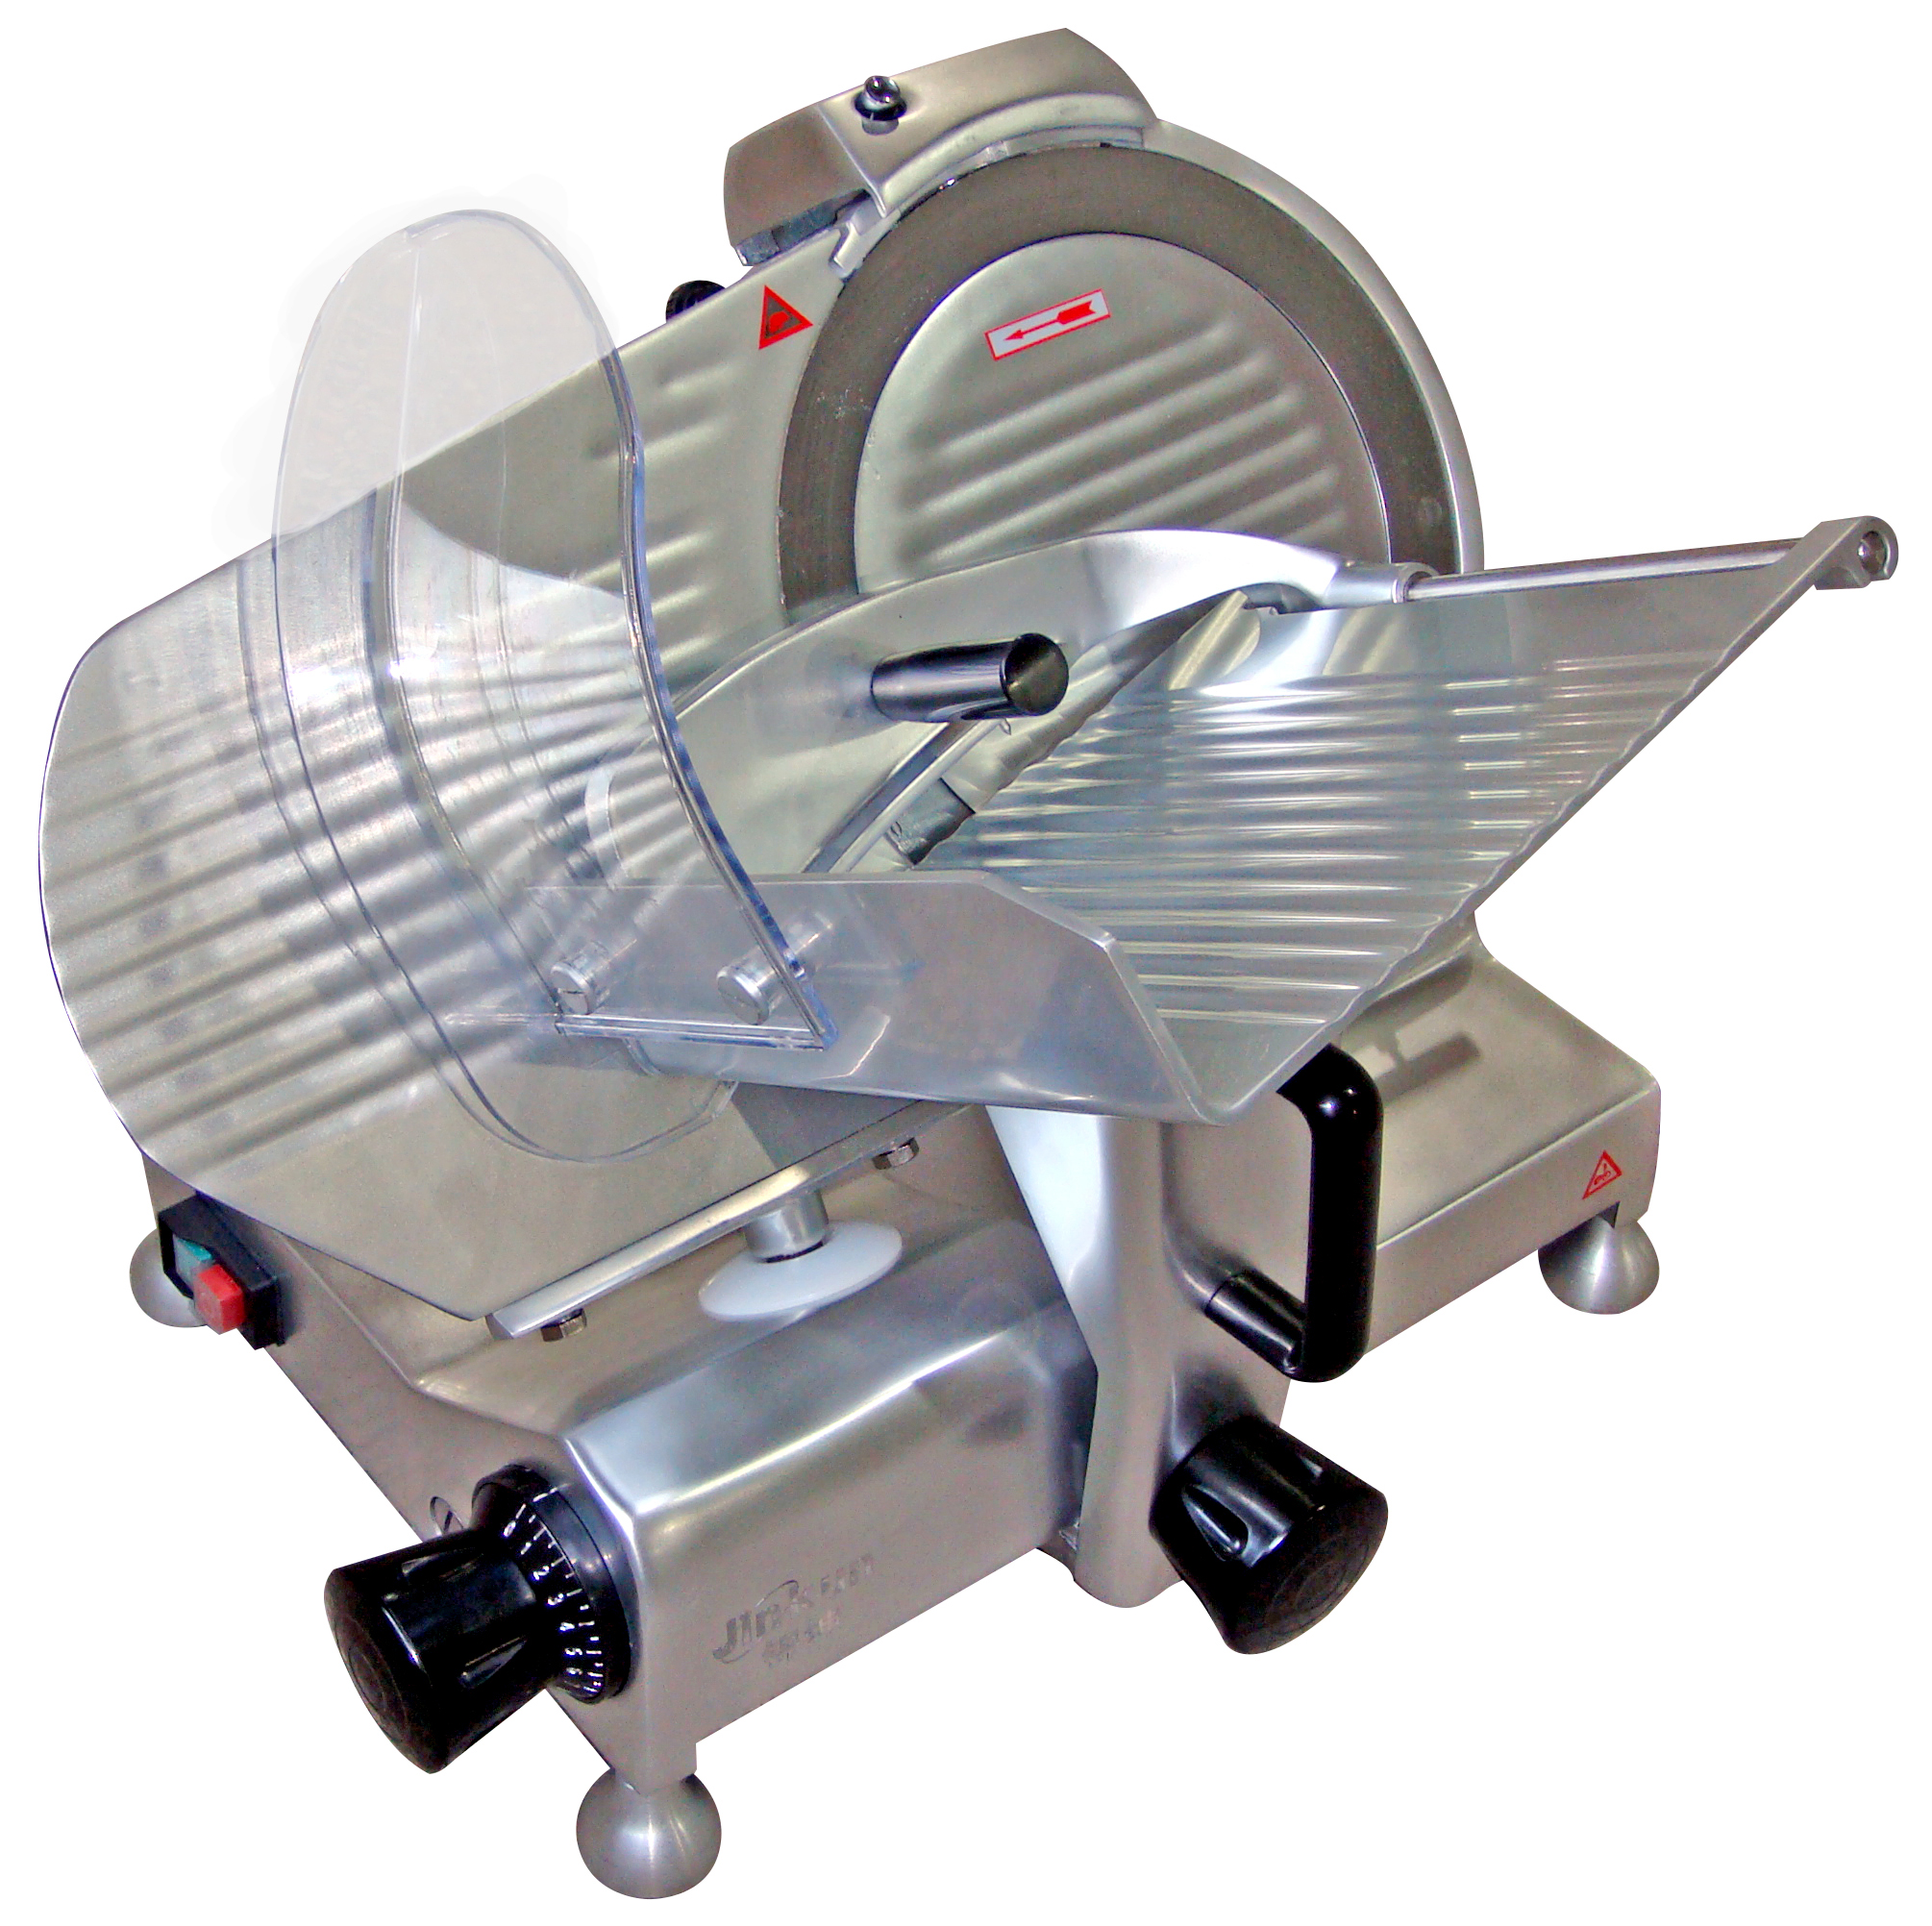 JK-275 Meat Slicer